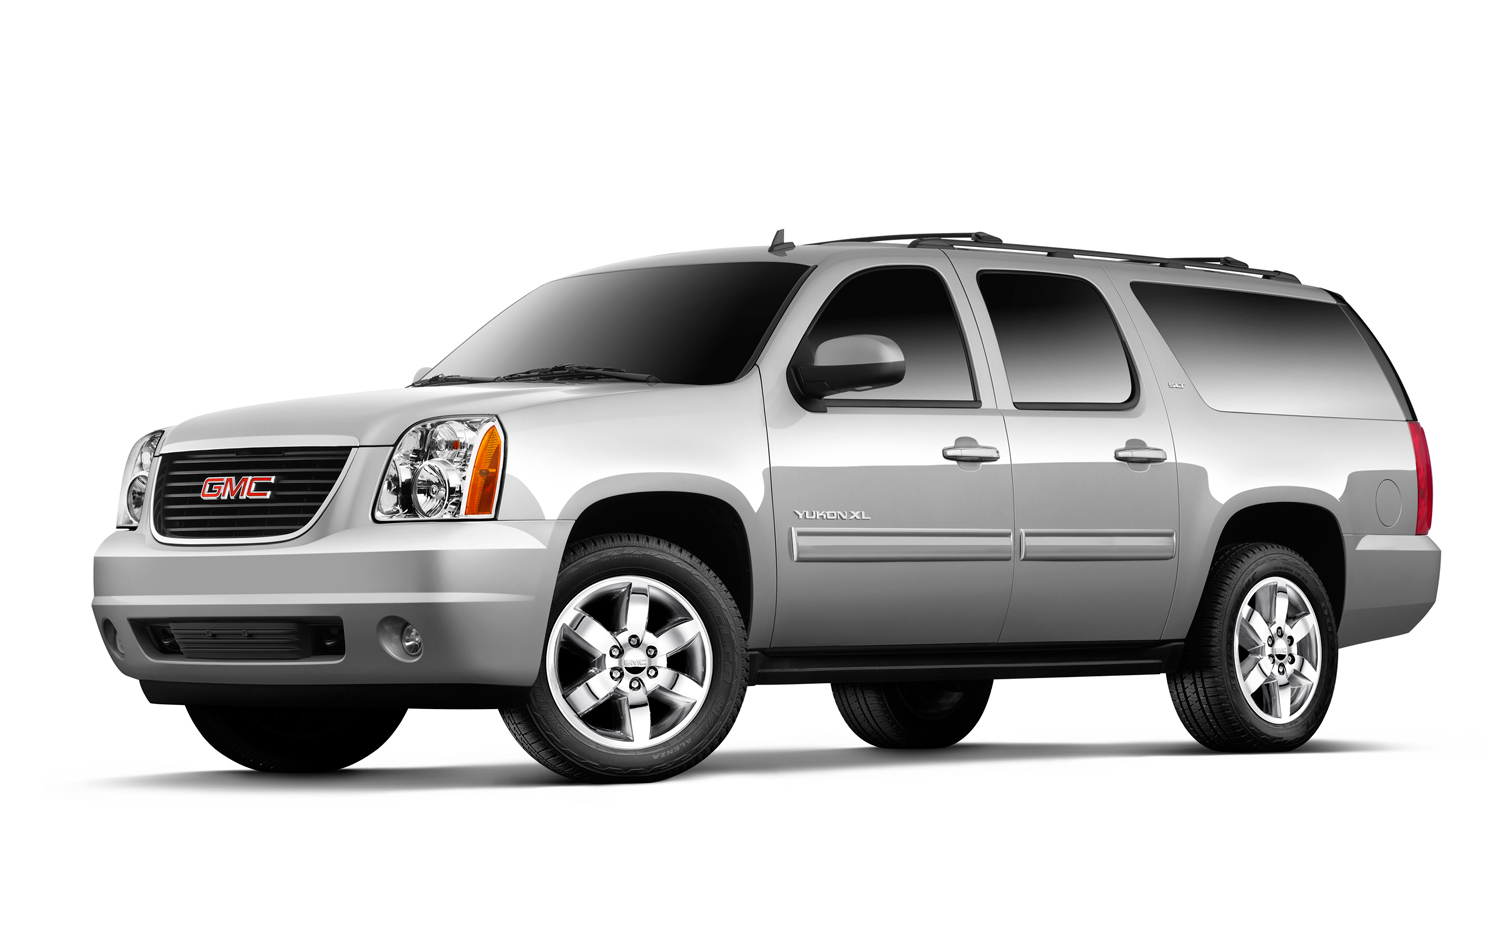 Pre-Owned SUV\'s For Sale in Camp Springs, MD | Car Smart Now